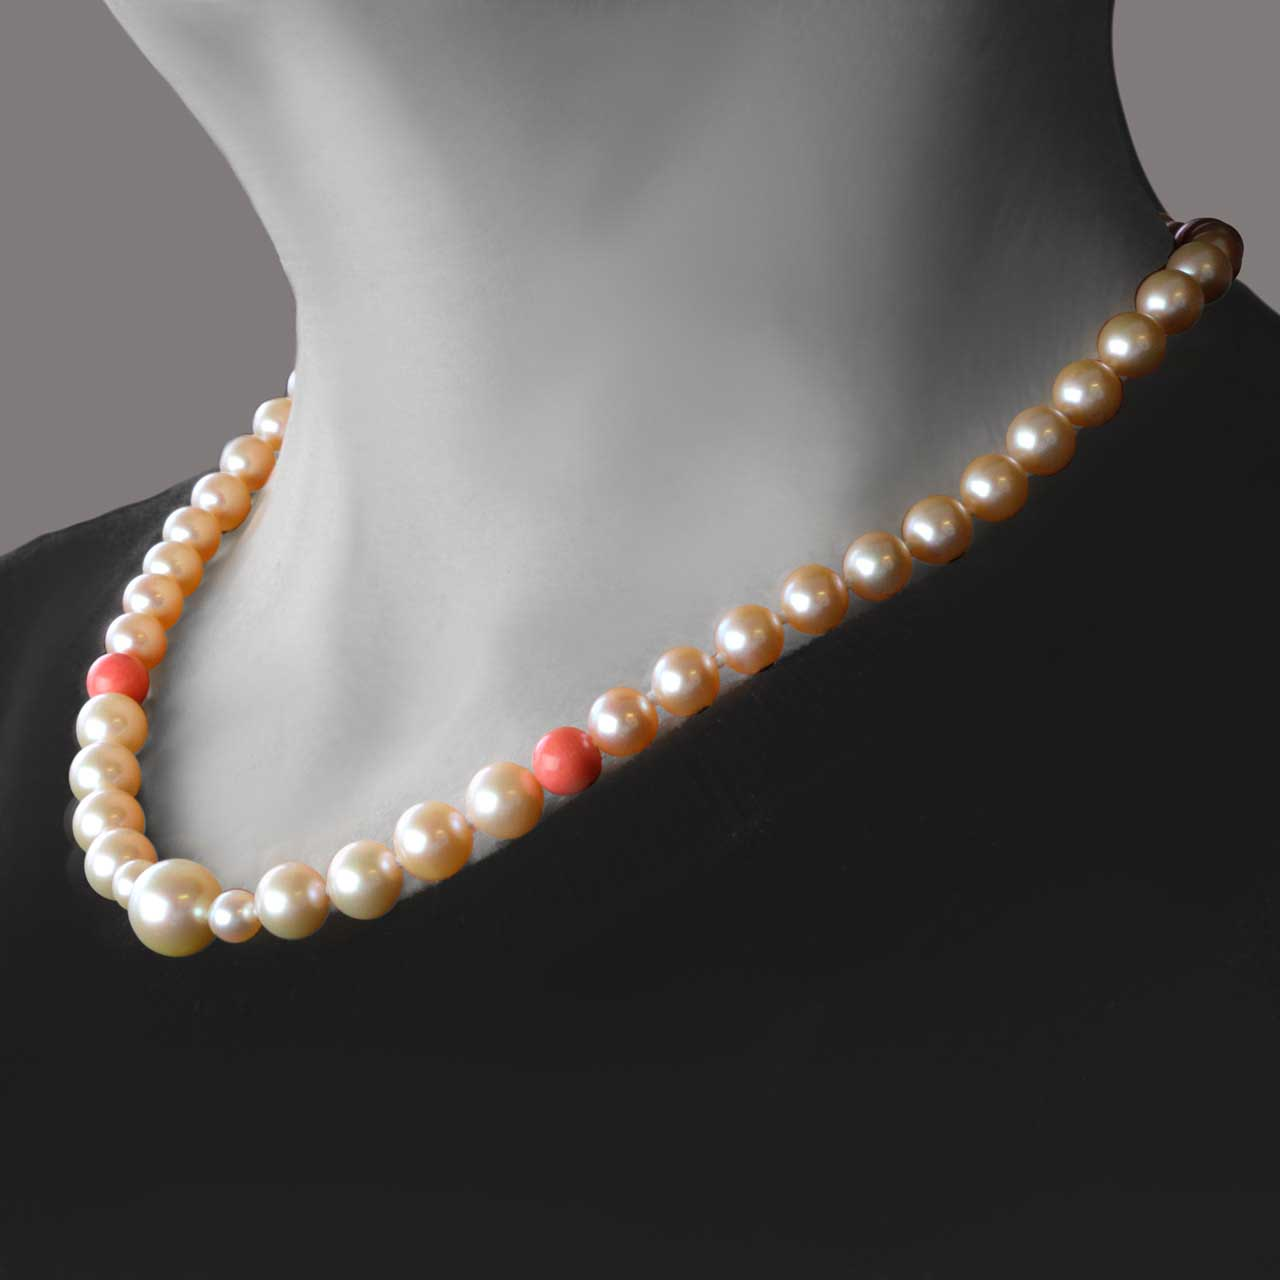 Peach pearl necklace 2